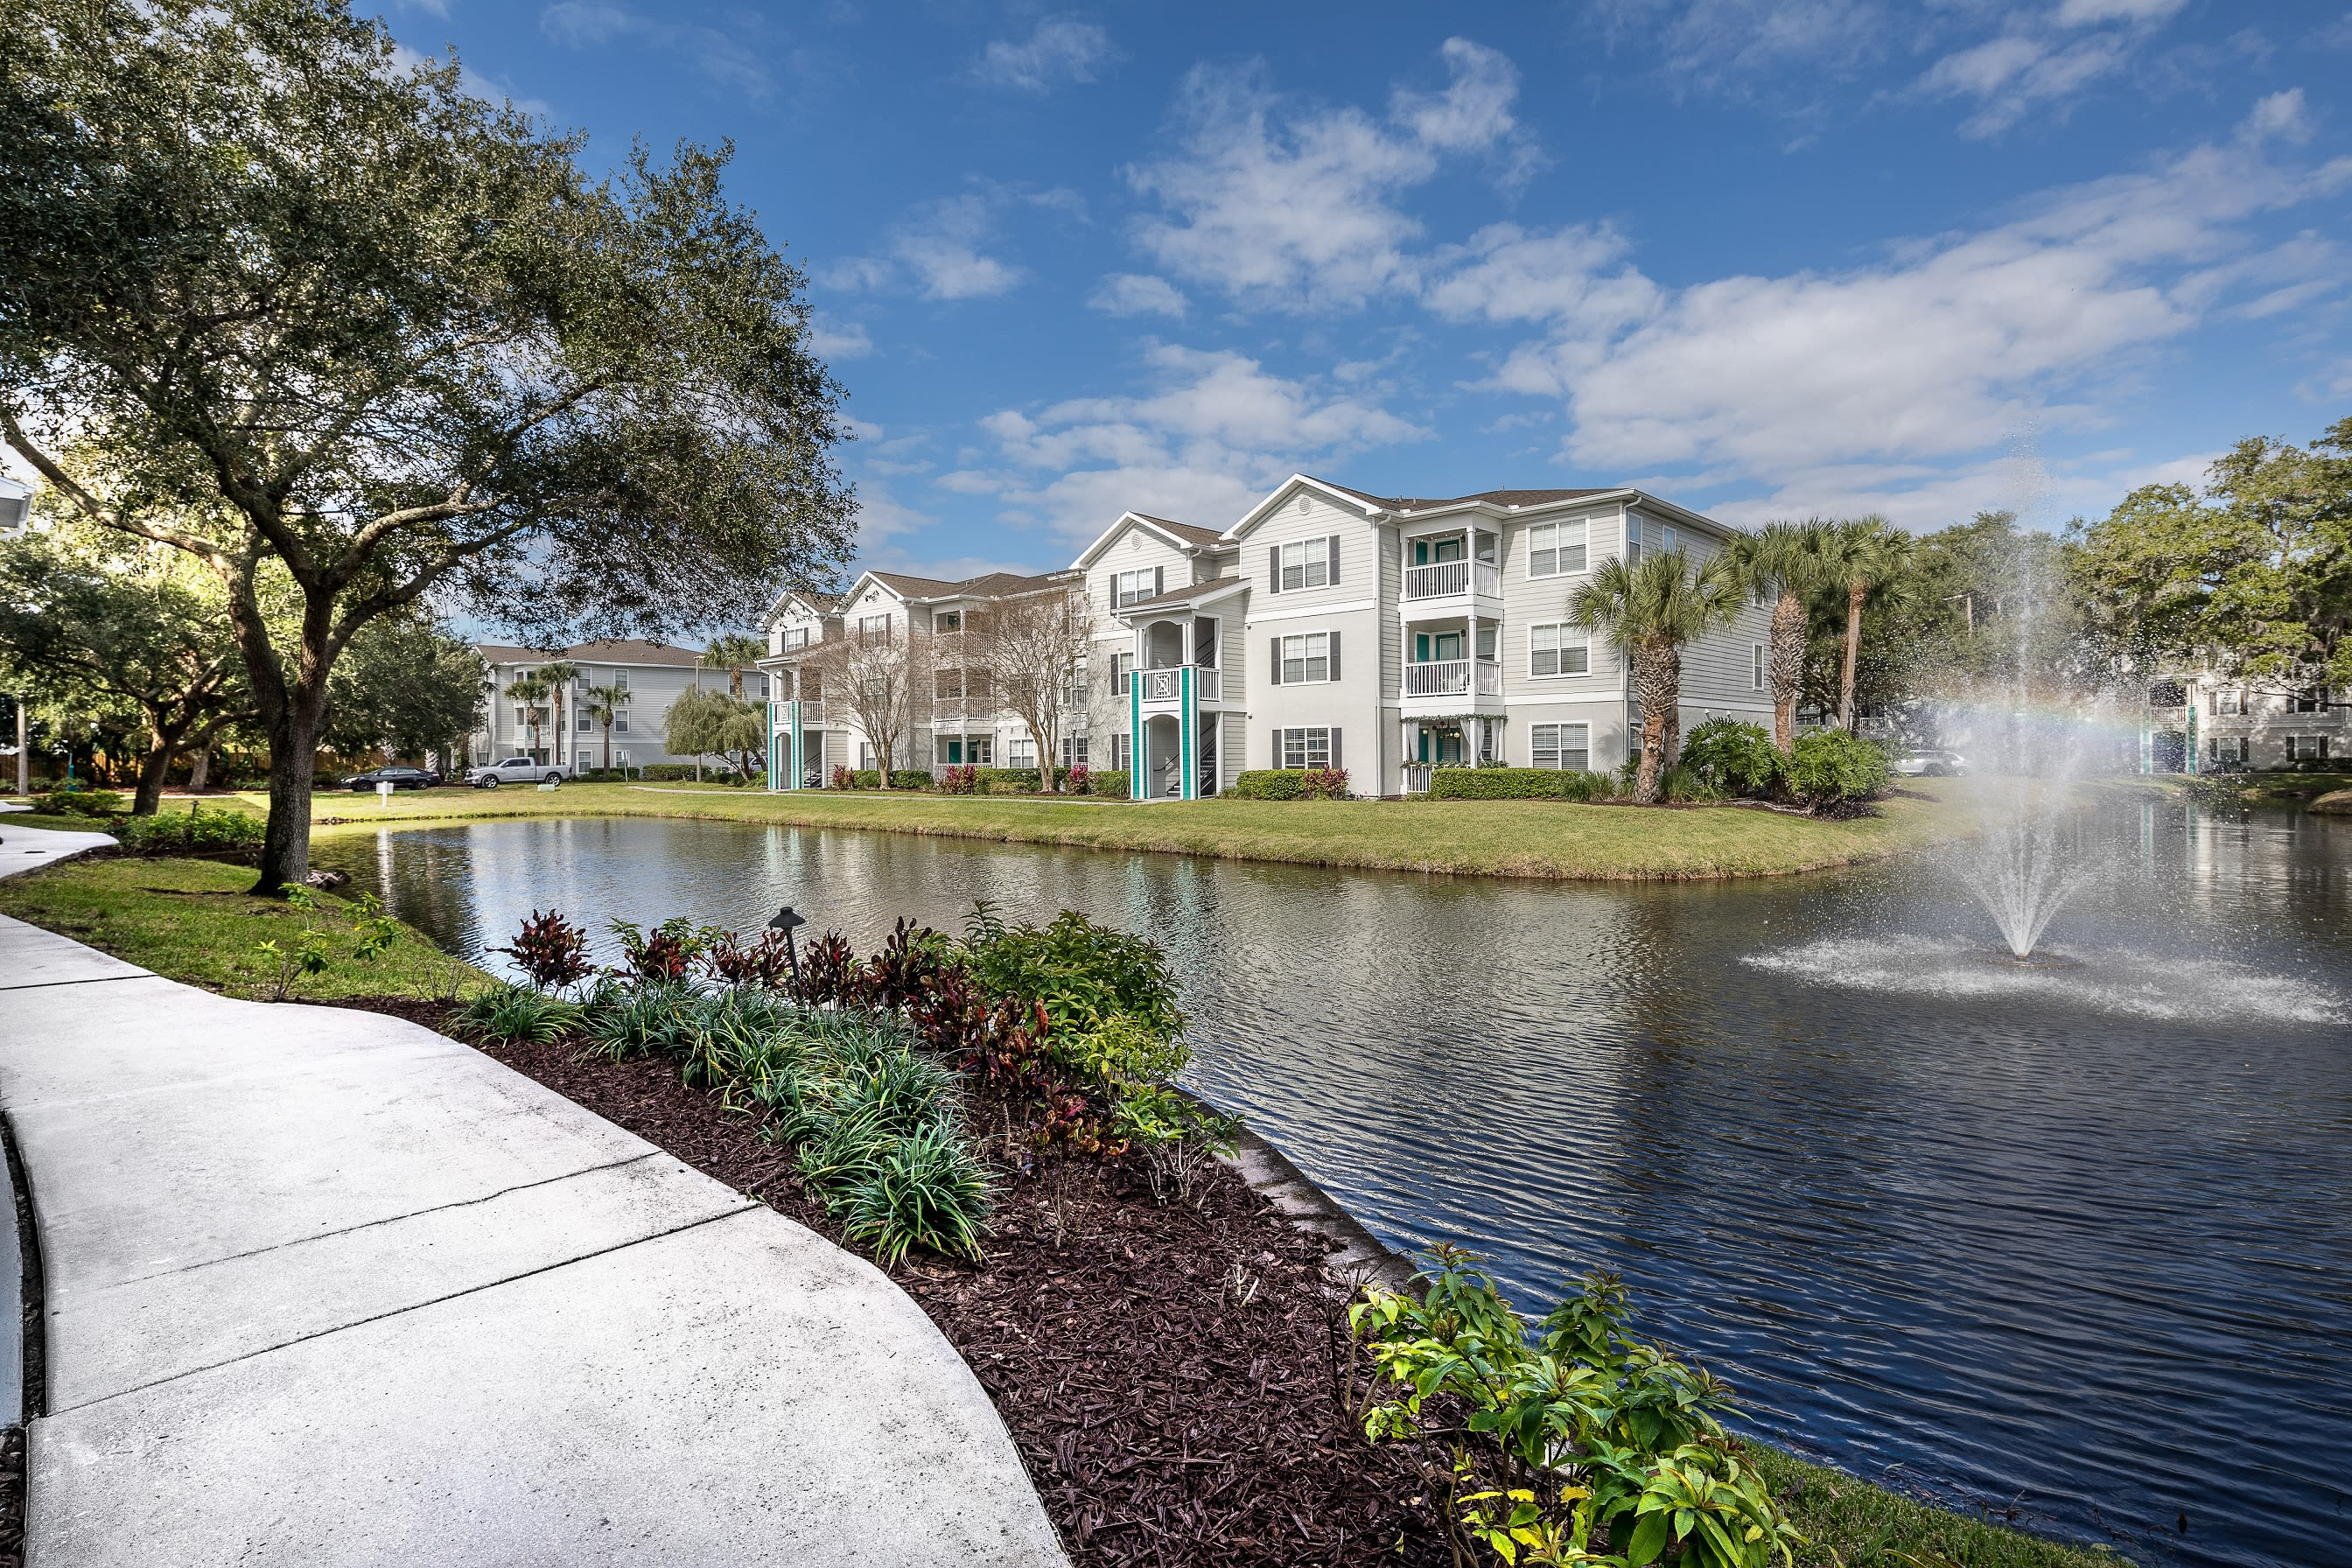 Perimeter sidewalks near large outdoor pond with fountain at Amira at Westly in Tampa, Florida